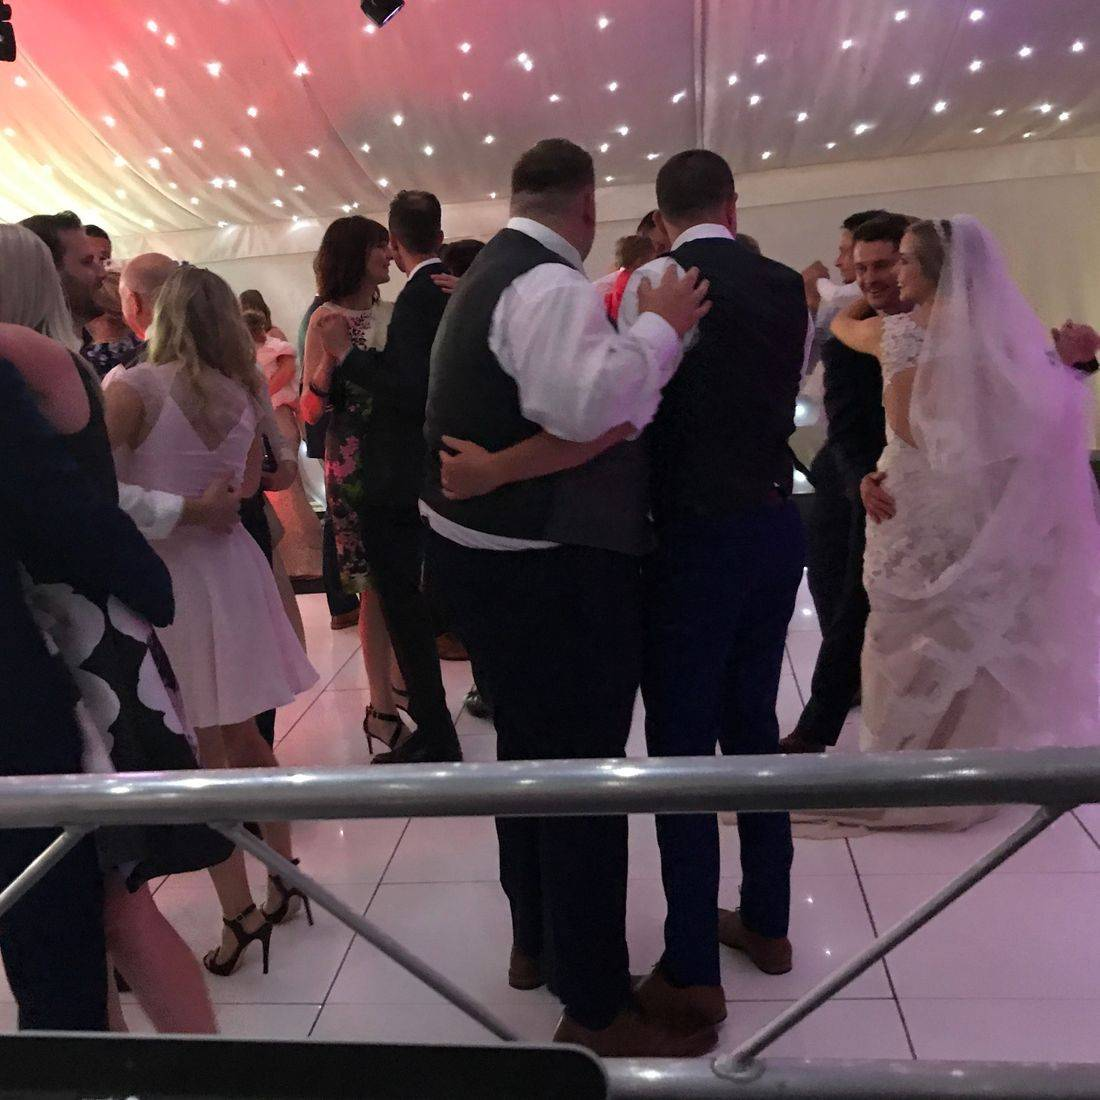 Wedding DJ Alrewas Hayes Lichfield, #DJ #WeddingDJ #birmingham #lichfield #Alrewas Hayes